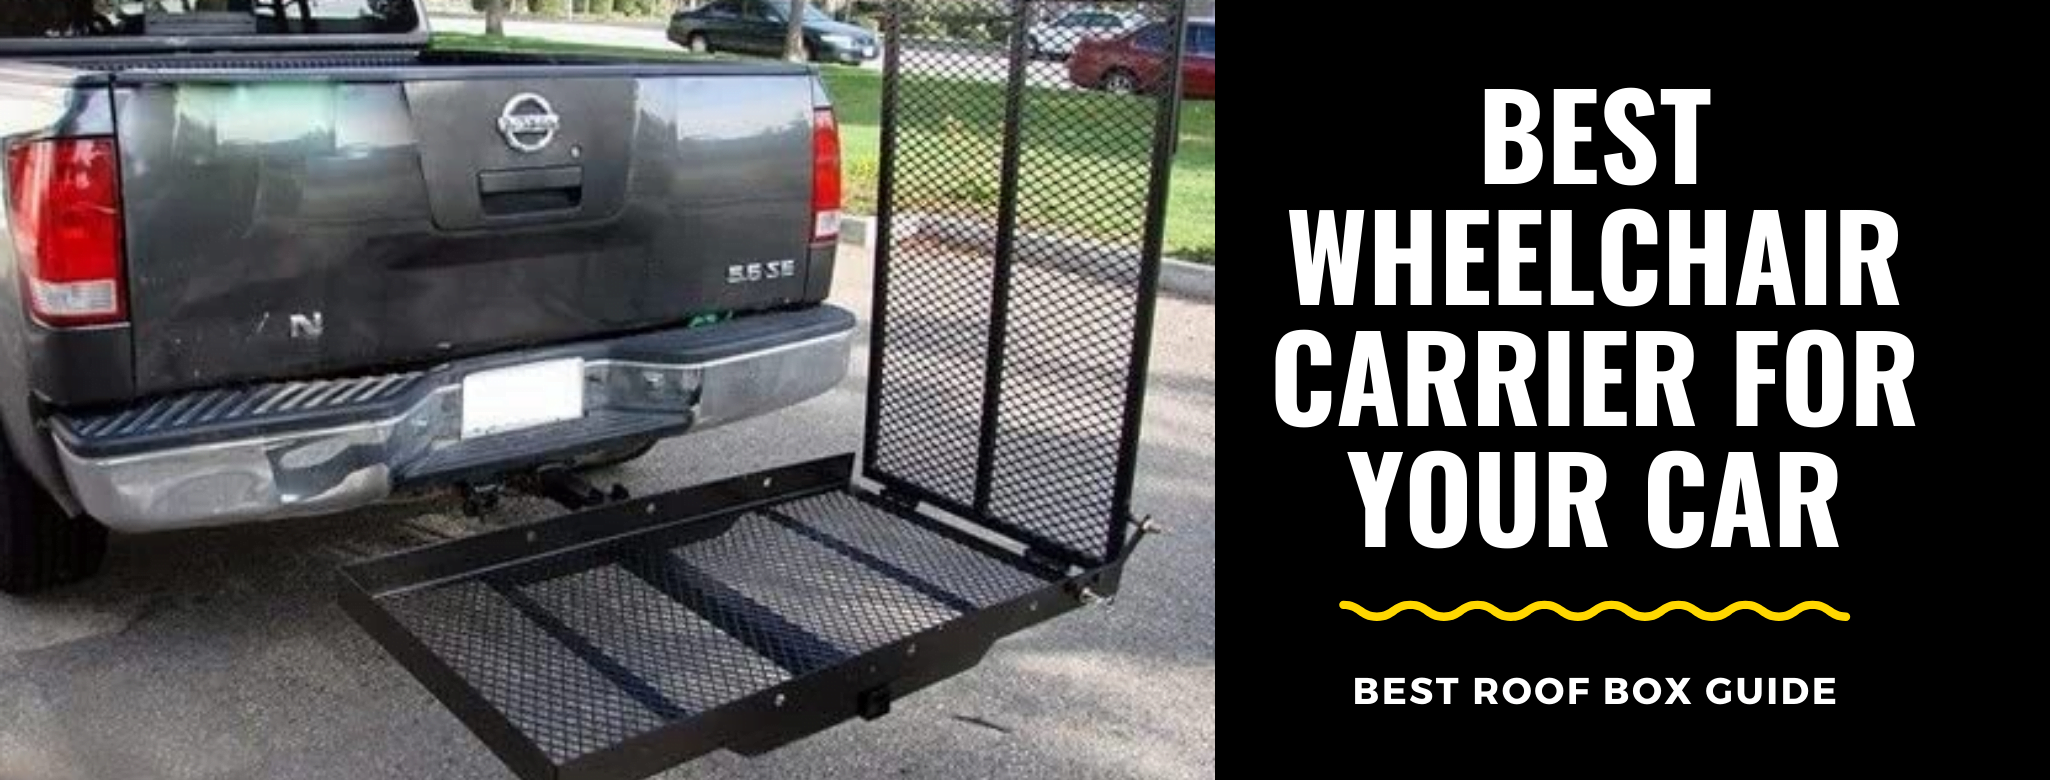 ♿Best Wheelchair Carrier For Cars |👉Top 7 Wheelchair carriers Updated ✅